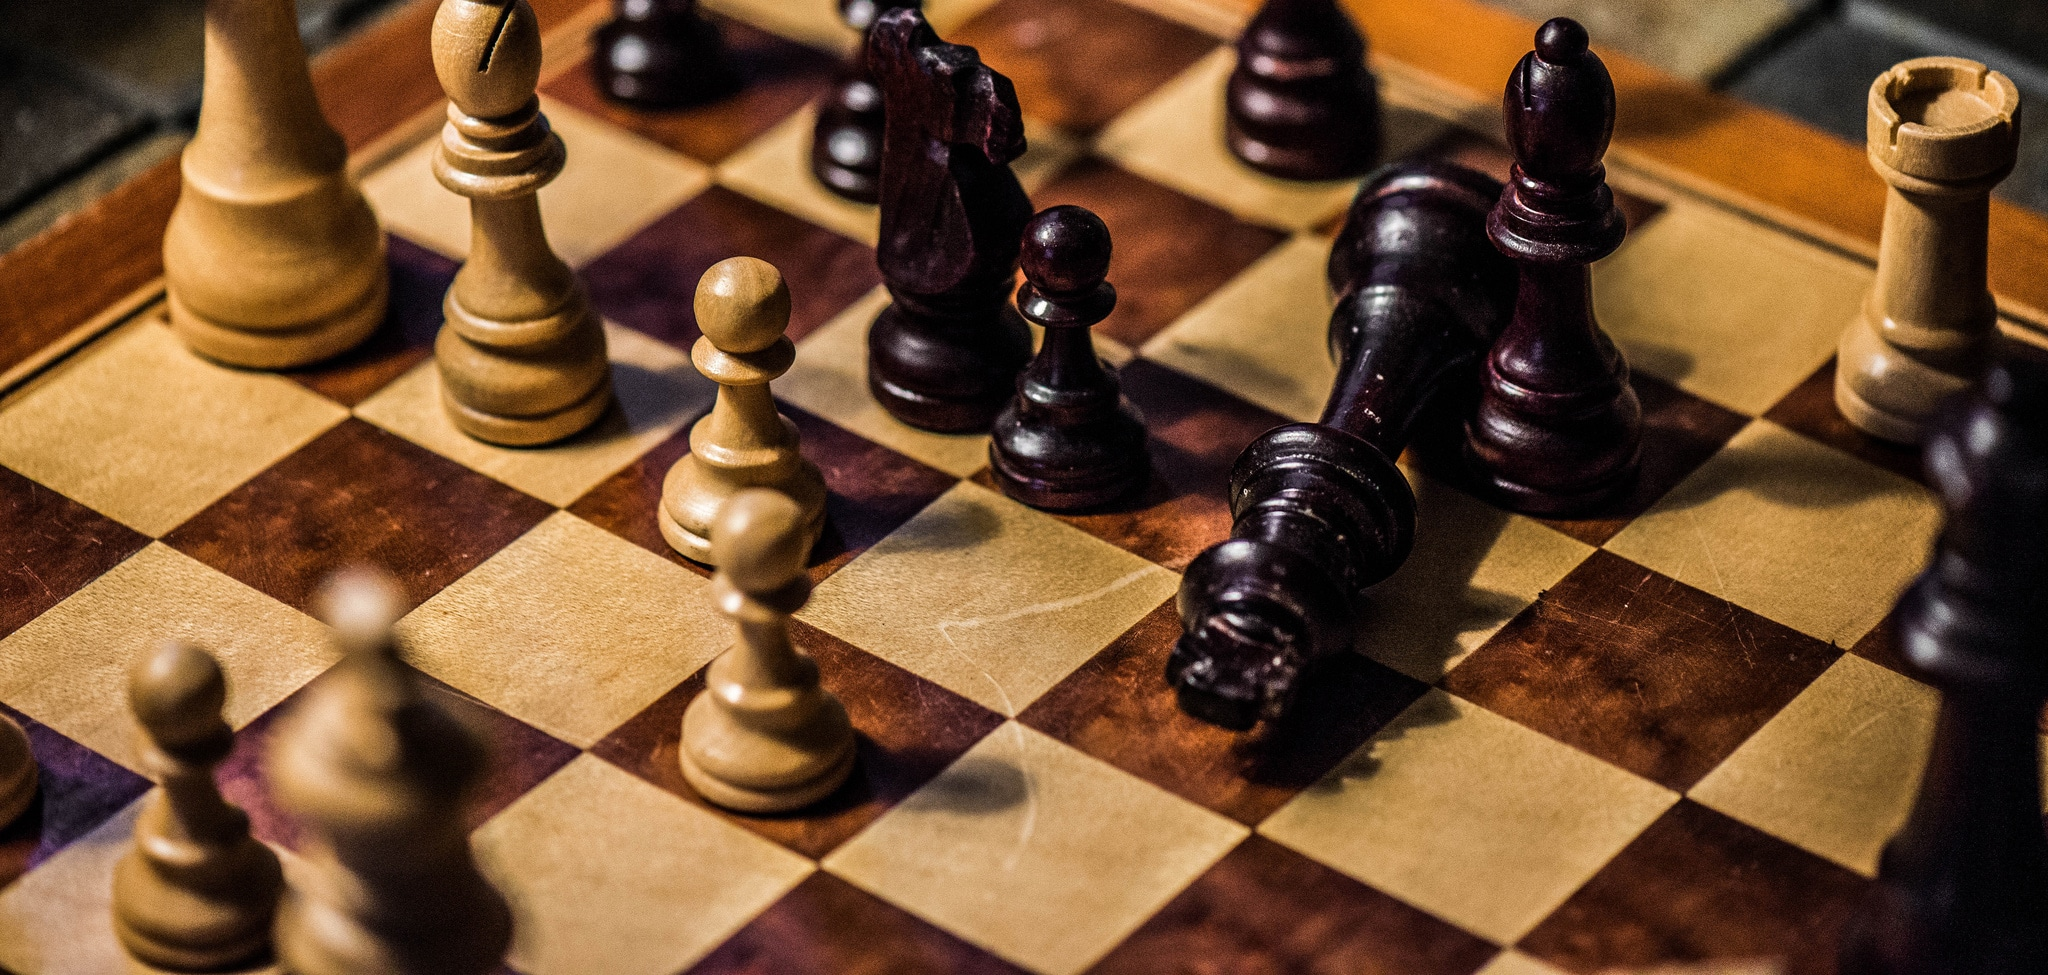 8 Best Chess Sets Reviewed in Detail (Sept  2019)